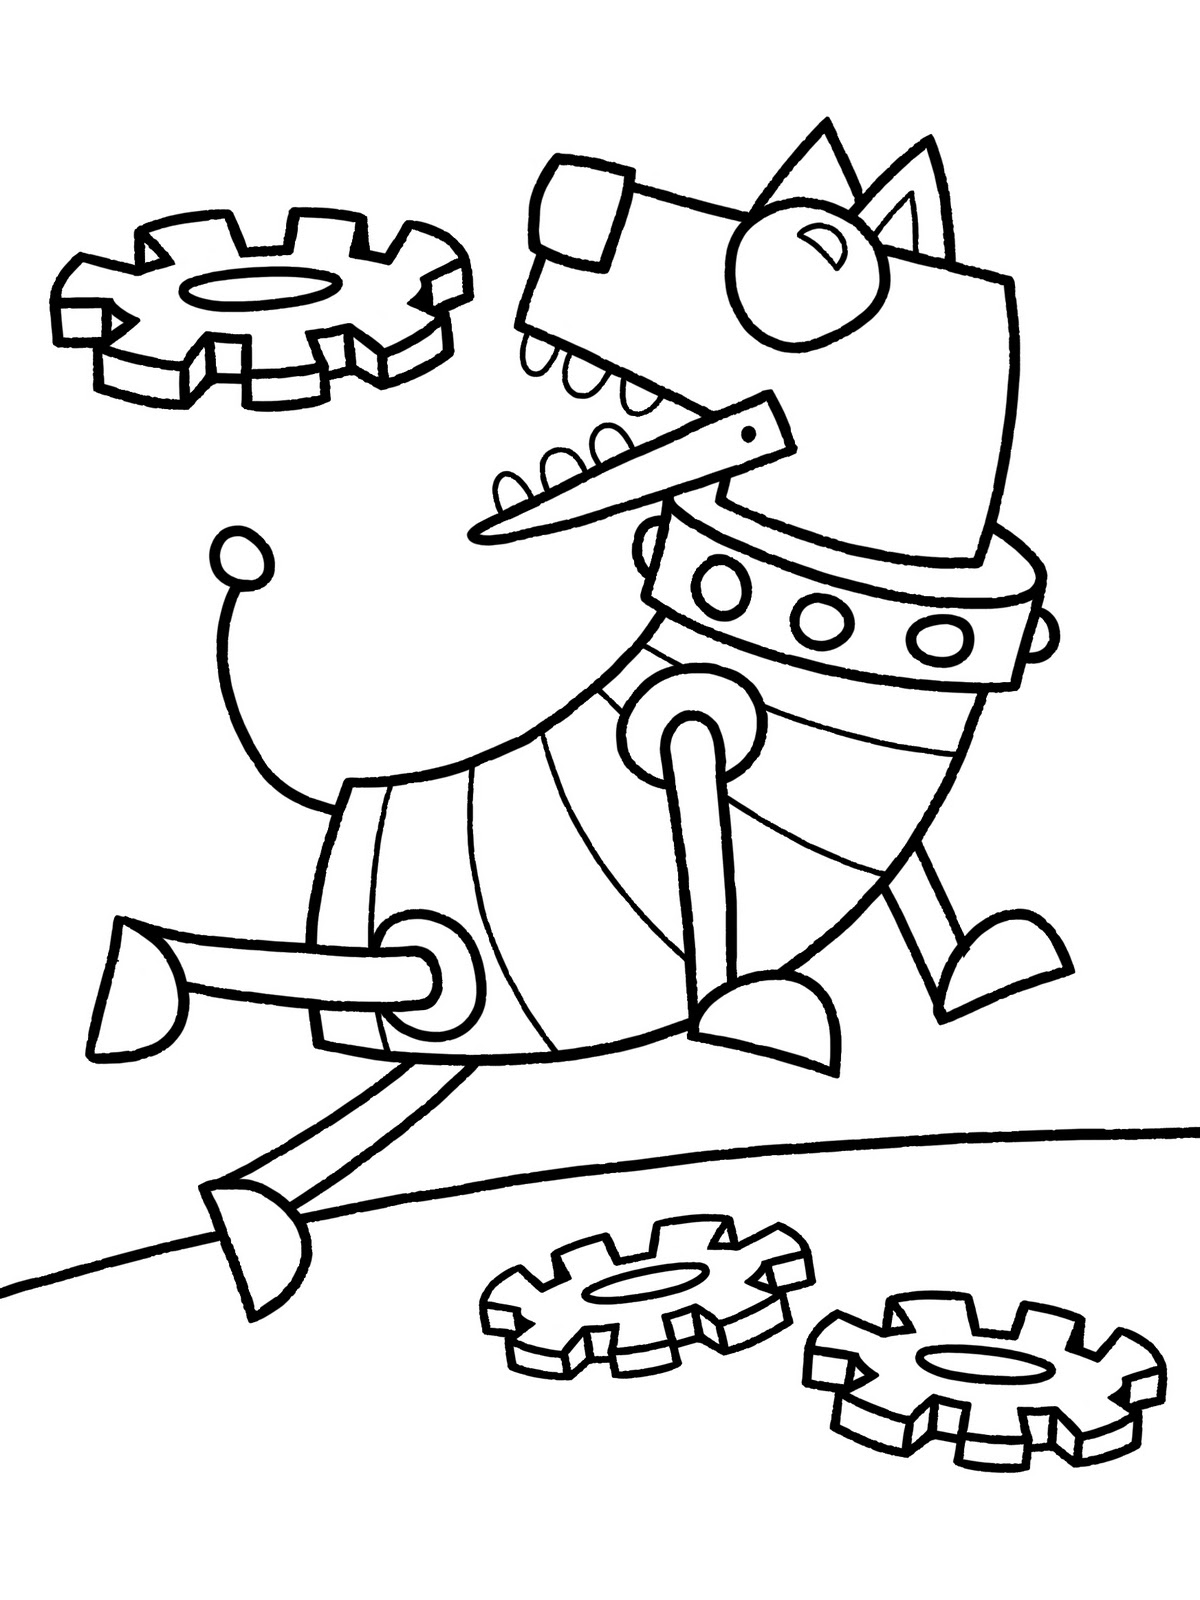 Robot Dog Printable Coloring Sheet For Kids